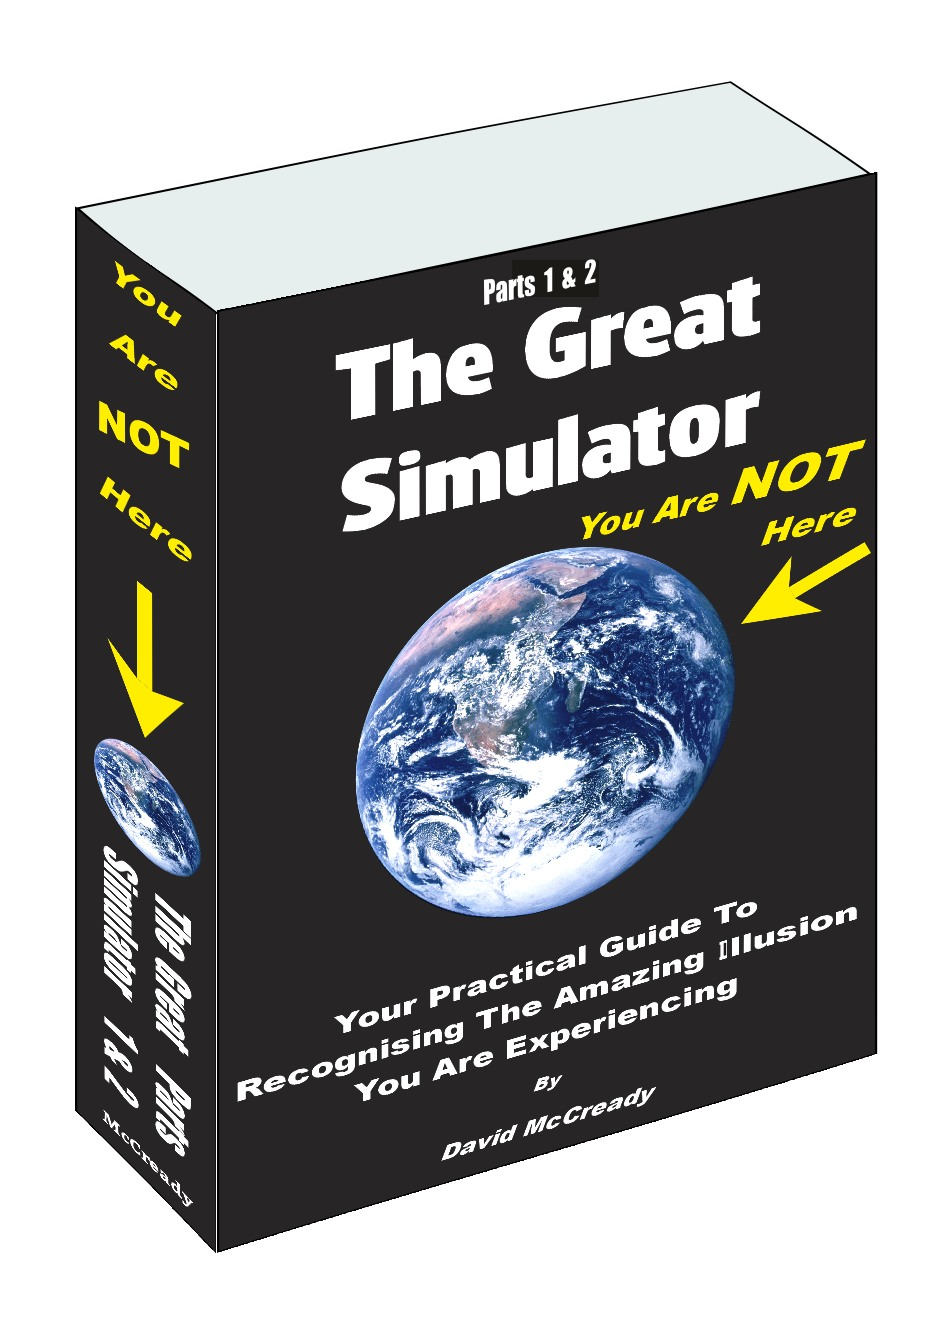 The Great Simulator  Parts 1 & 2 - paperback - Latest 3rd Edition